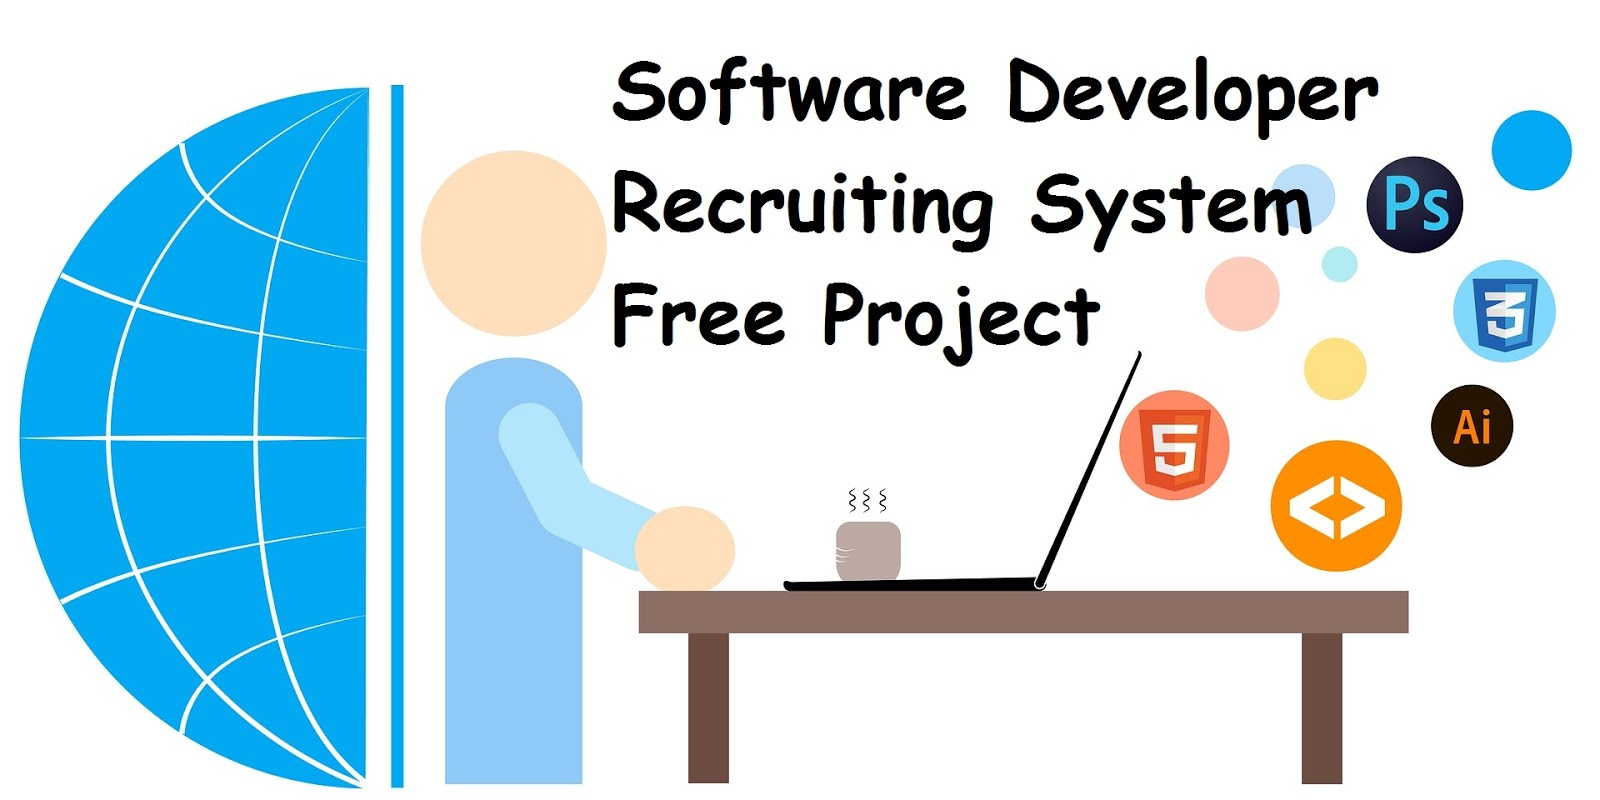 Software Developer Recruiting System Free Project